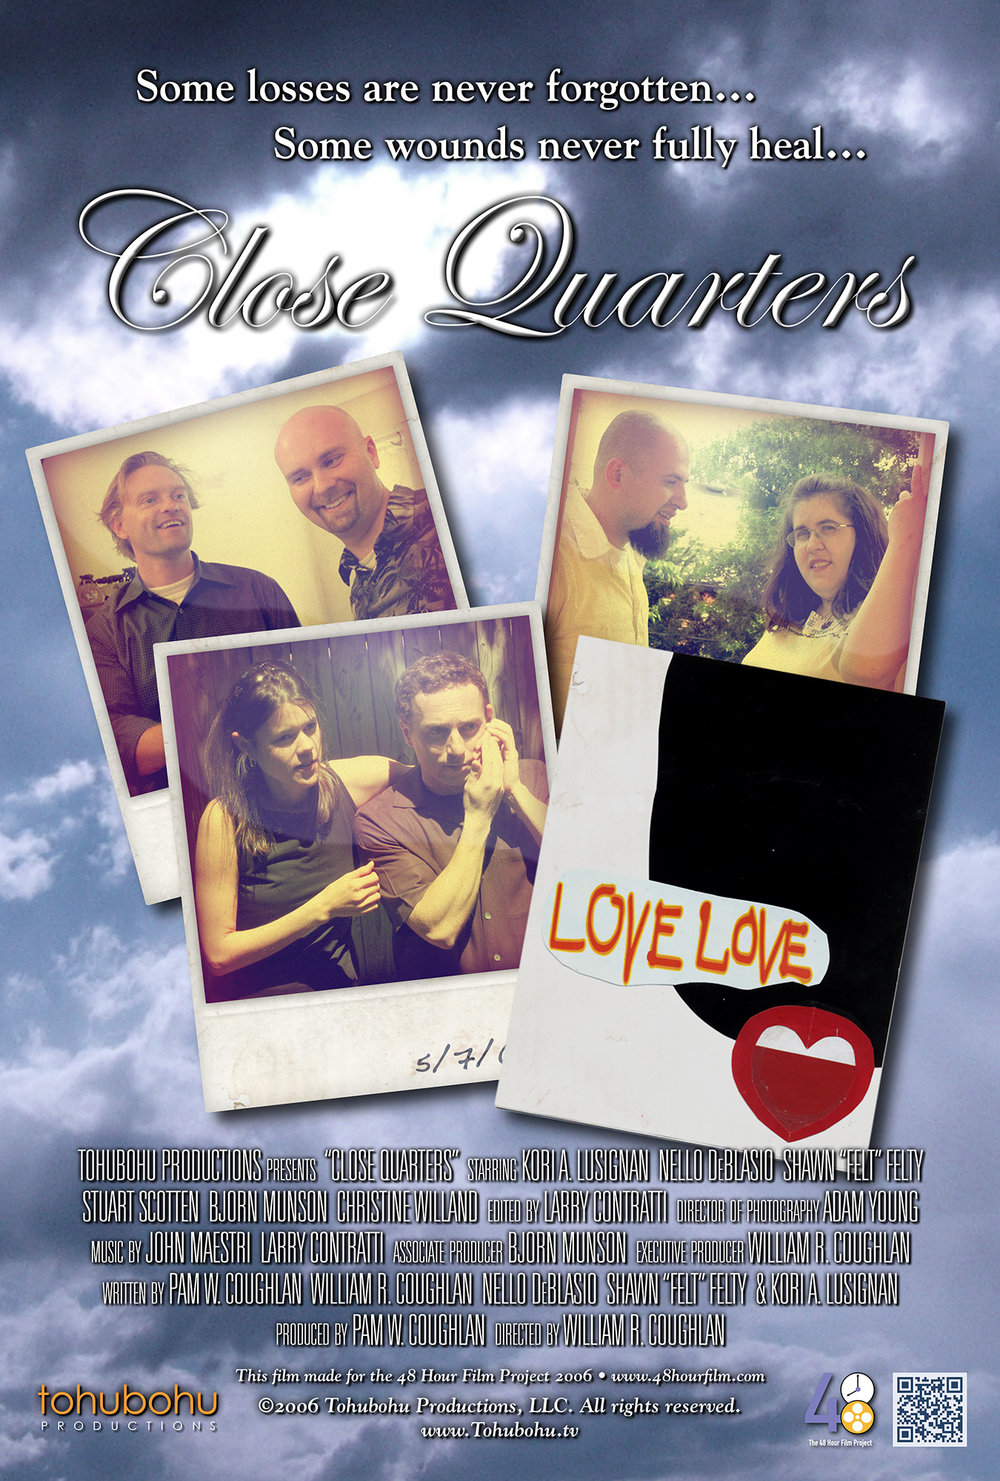 "Close Quarters - 2006 · 6:48 · written by Pam W. Coughlan, William R. Coughlan, Nello DeBlasio, Shawn ""Felt"" Felty & Kori A. Lusignan · produced by Pam W. Coughlan · directed by William R. CoughlanEvery Sunday, a group of close friends gets together for a backyard barbecue. But one day, Smitty decides to bring along his new girlfriend — and everyone is shocked to discover that she looks strikingly similar to Samantha, another friend who died several years ago. As the afternoon progresses, each of the friends must not only deal with the new addition to their little circle, but confront the ghosts of their own past relationships — resulting in unplanned revelations.Once again, Tohubohu Productions returned to the 48 Hour Film Project with ""Close Quarters"" — a drama (a brand-new genre for the 2006 competition) produced entirely over the weekend of May 5–May 7. Frequent Tohubohu director William R. Coughlan returned to helm the effort, and Pam W. Coughlan (who had previously appeared in ""Schlimmer,"" ""Screening Process,"" and ""The Big Lie,"" as well as producing ""A Birthday Movie""), took on the producer's role. The short premiered at the AFI Silver Theatre on Friday, May 12, 2006."